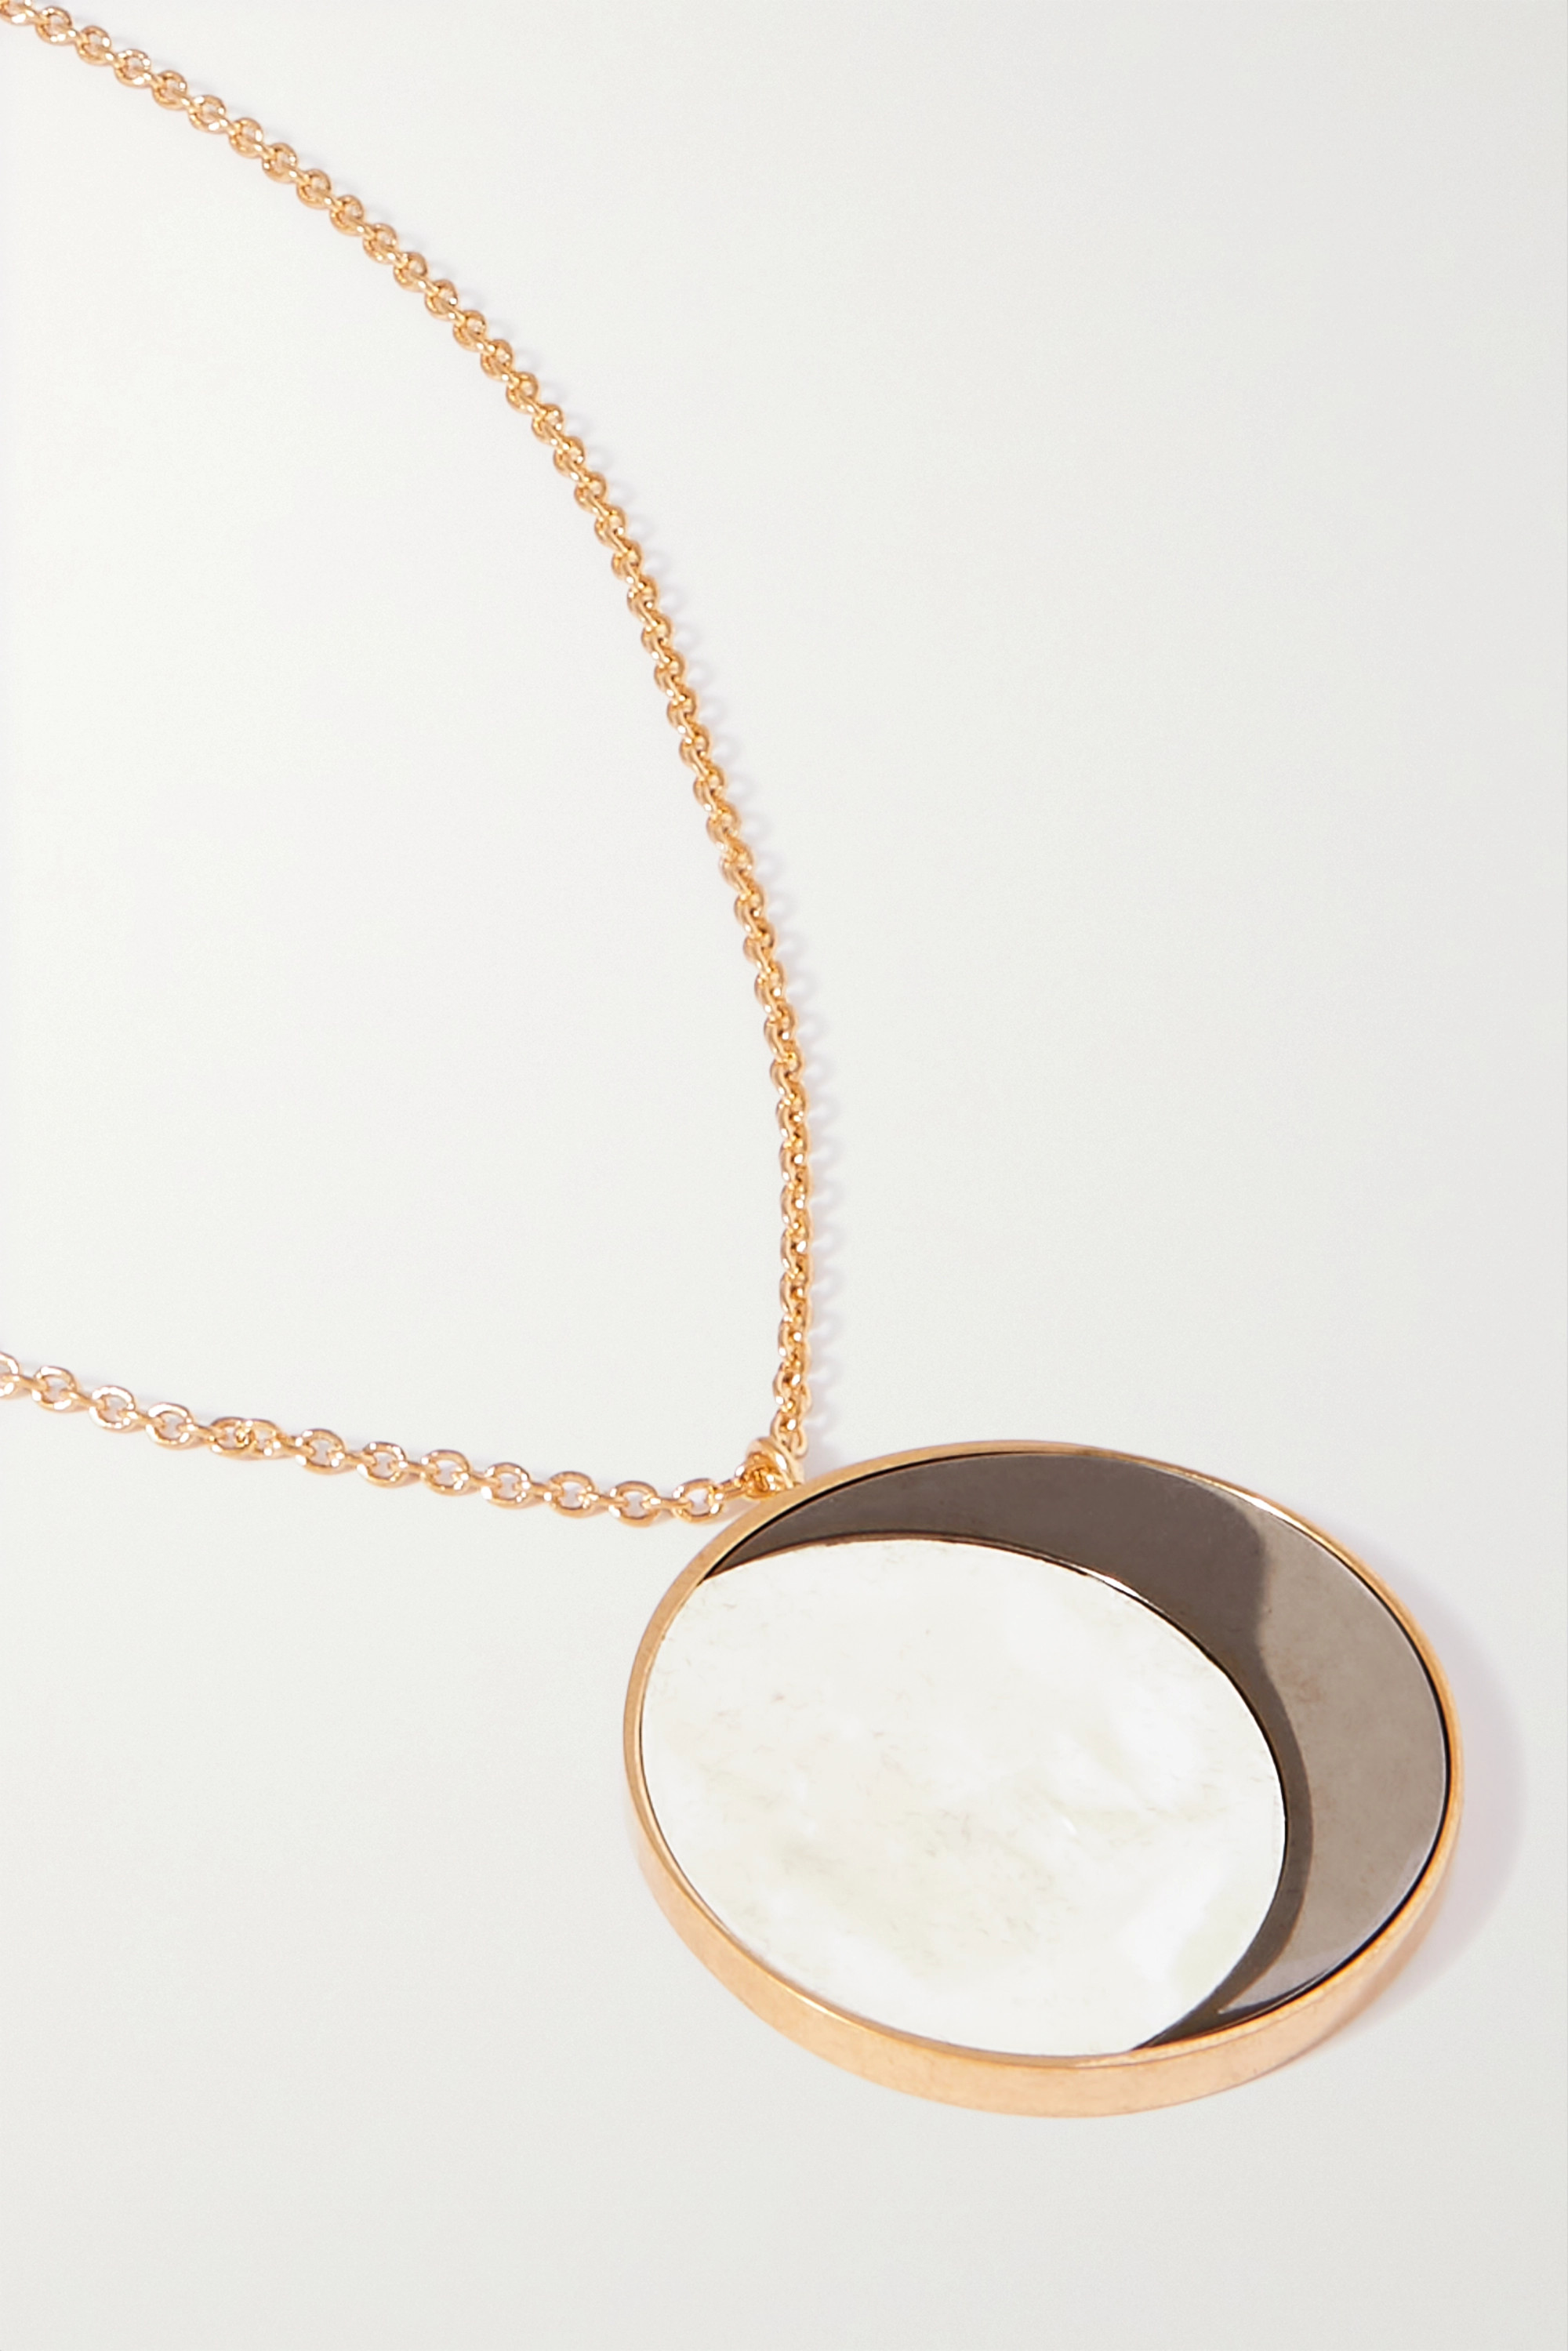 Loewe Ellipse gold-tone, acrylic and mother-of-pearl necklace